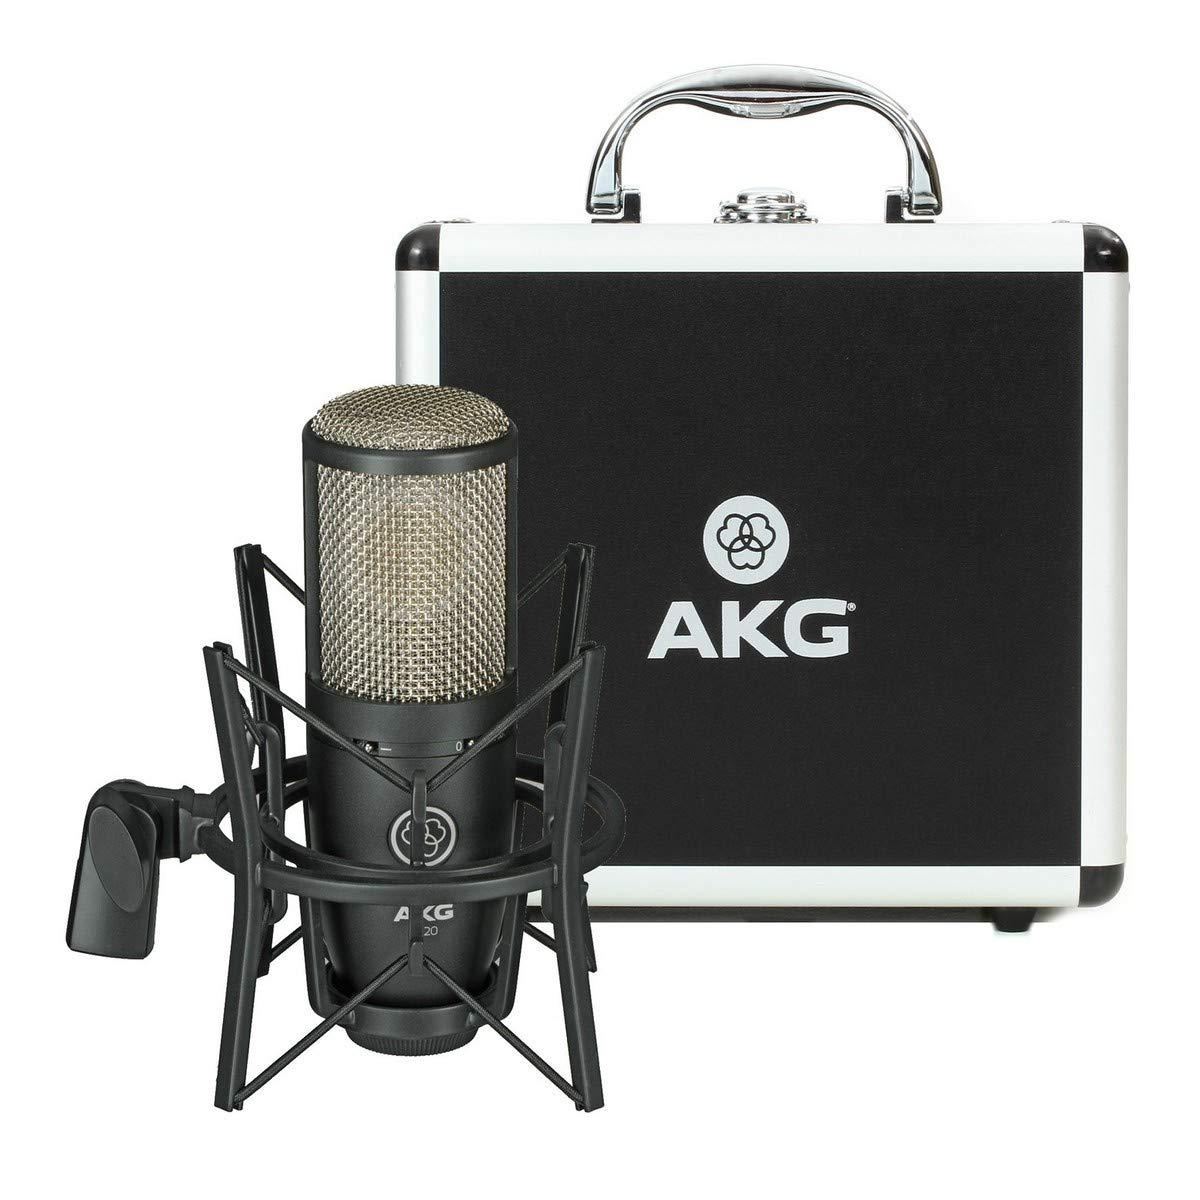 AKG Vocal Condenser Microphone, Black, 6.00 x 8.00 x 12.00'' (3101H00420) by AKG (Image #5)